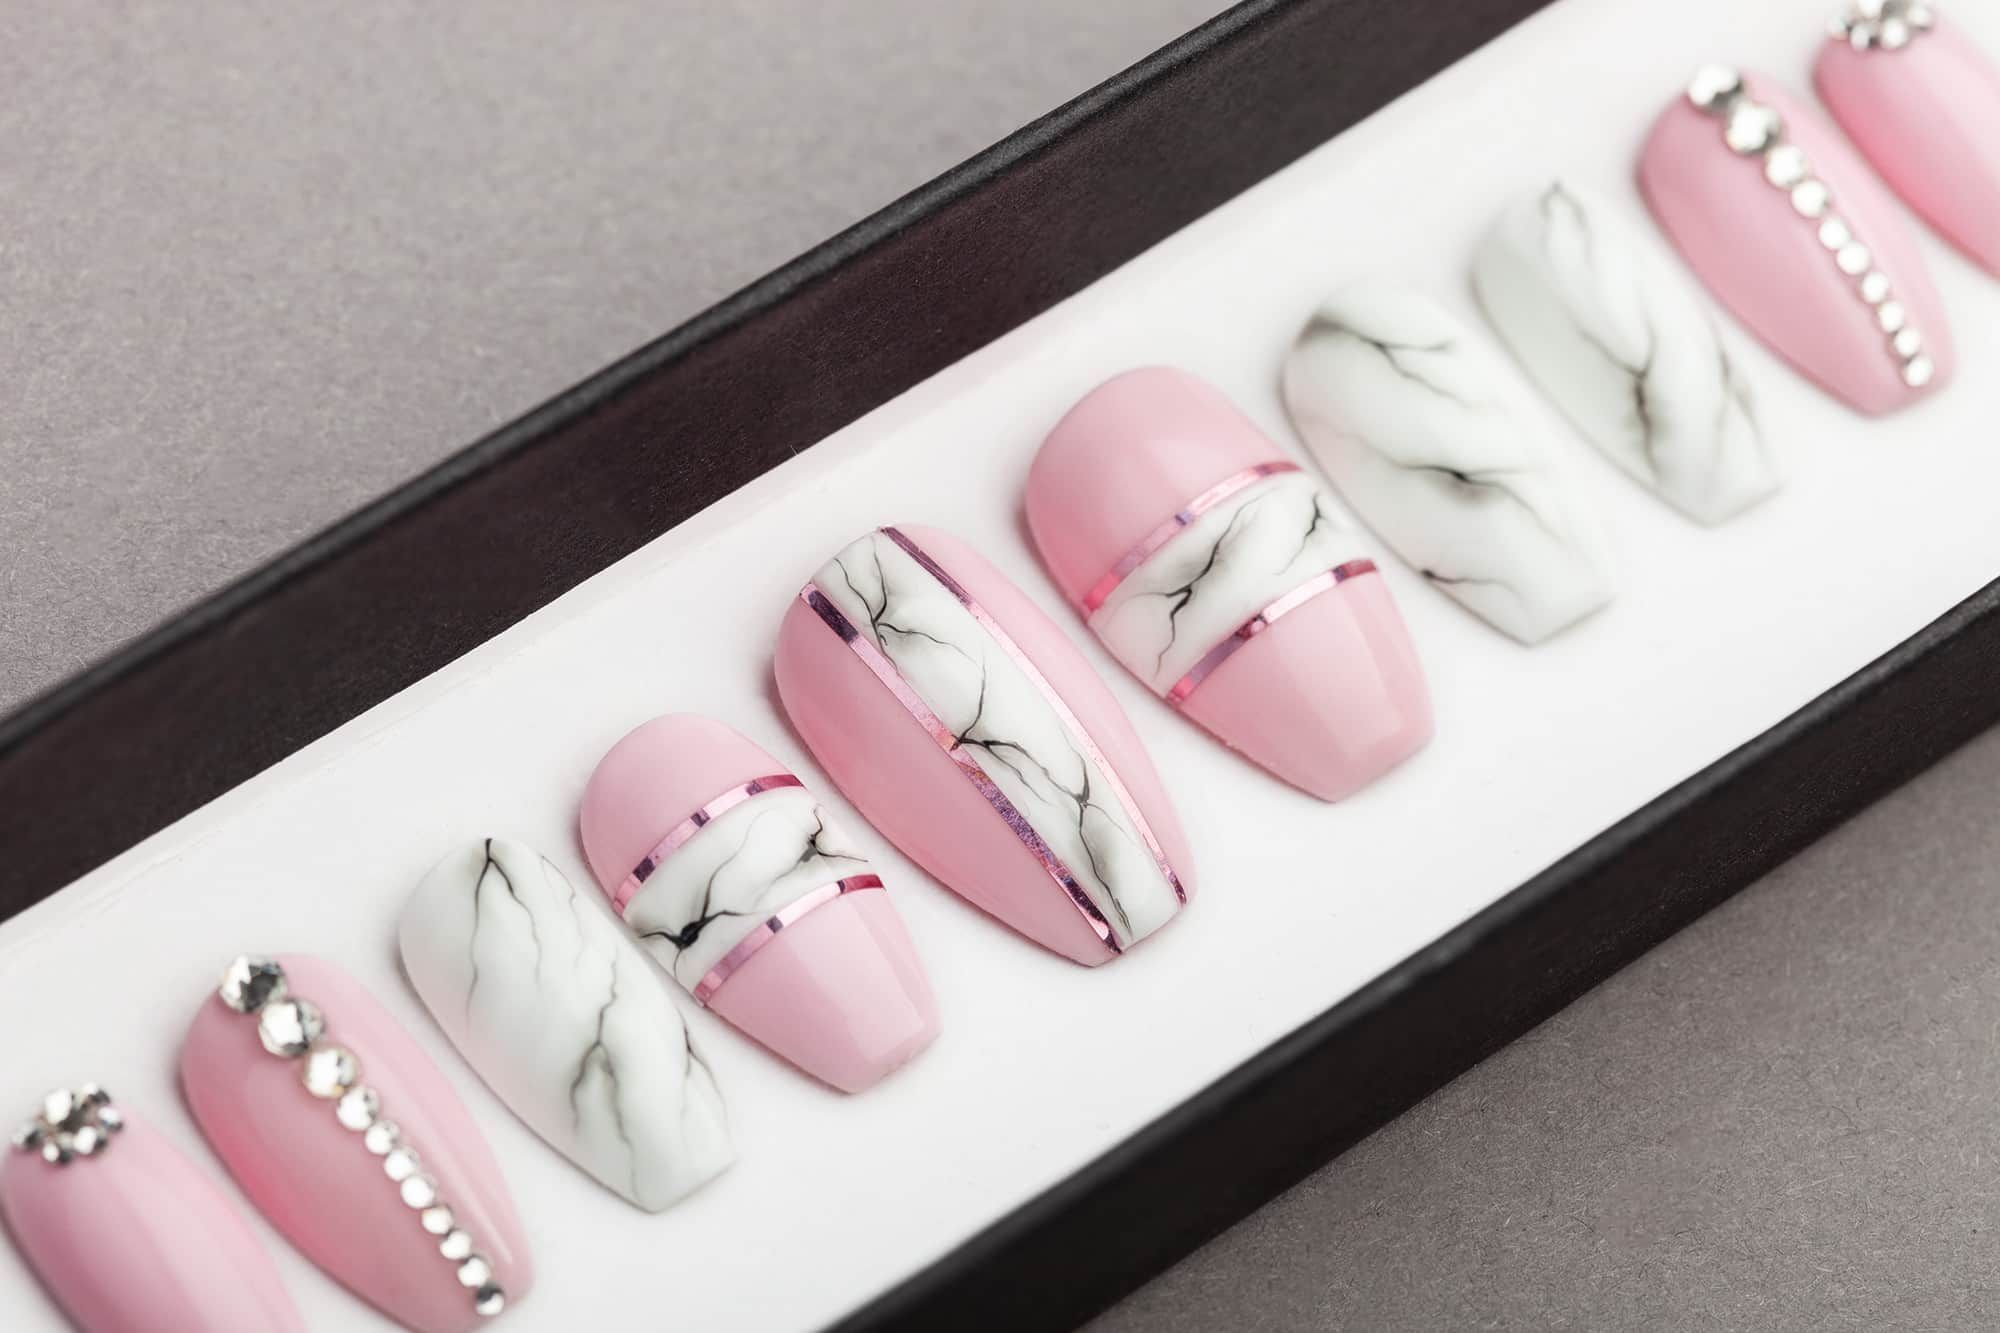 Pink White Marble Press On Nails With Rhinestones Lilium Nails Press On Nails Glue On Nails Rhinestone Nails